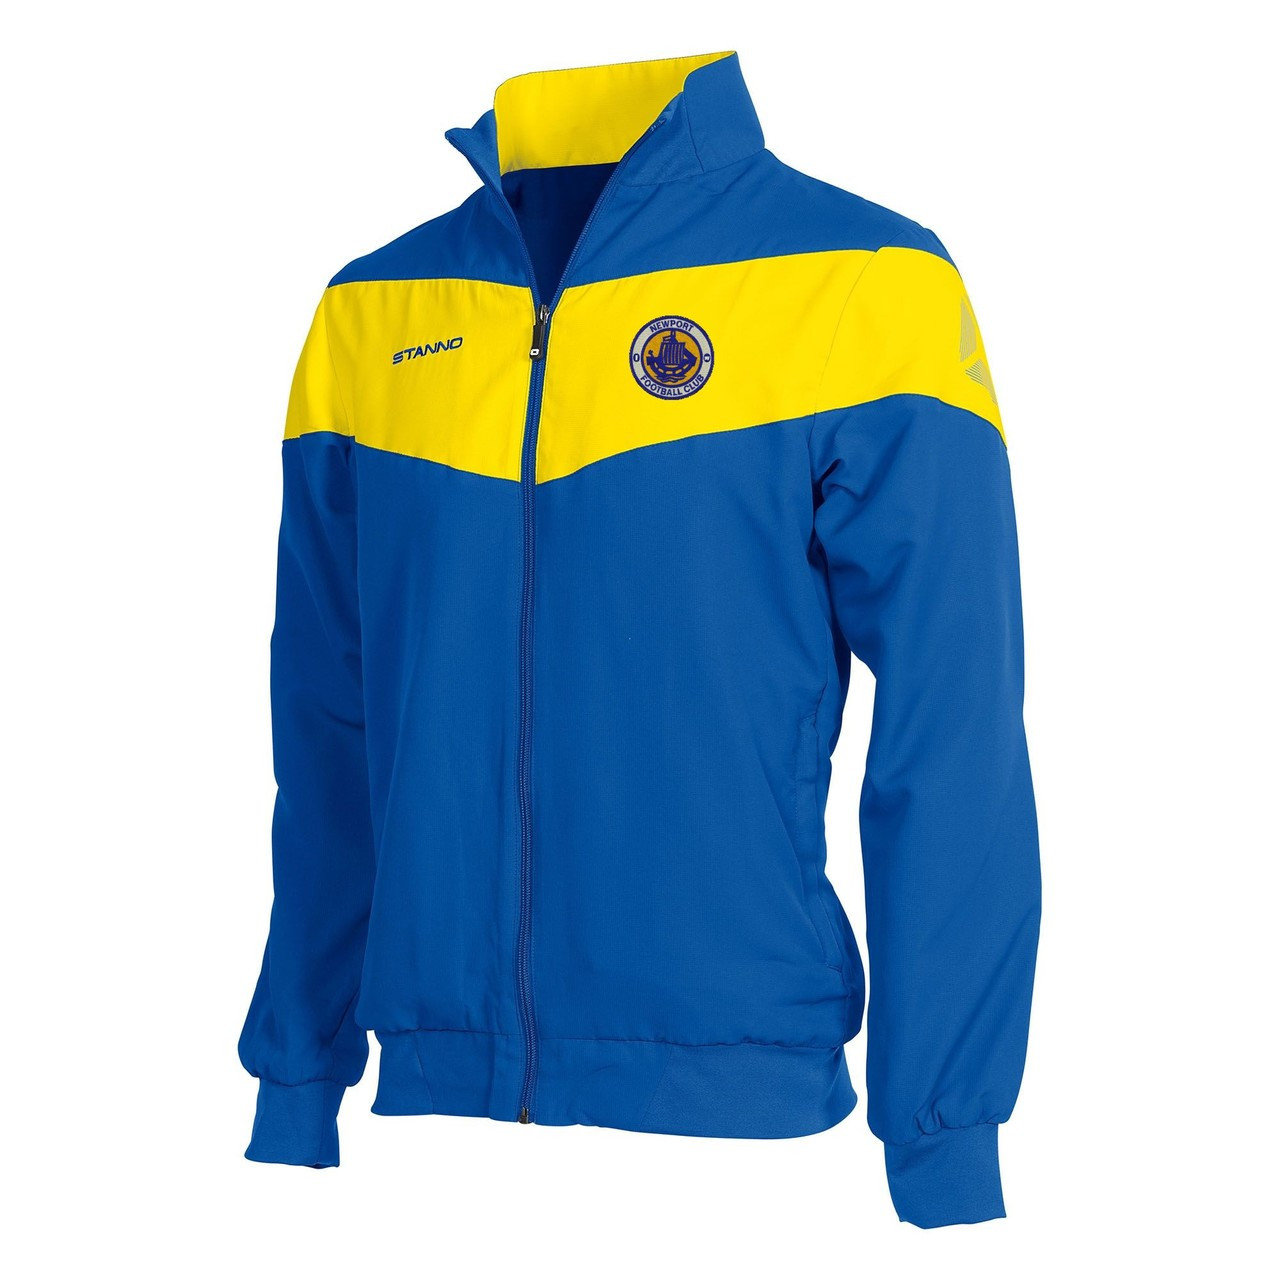 Newport IW FC Supporters Track Jacket - CHILD